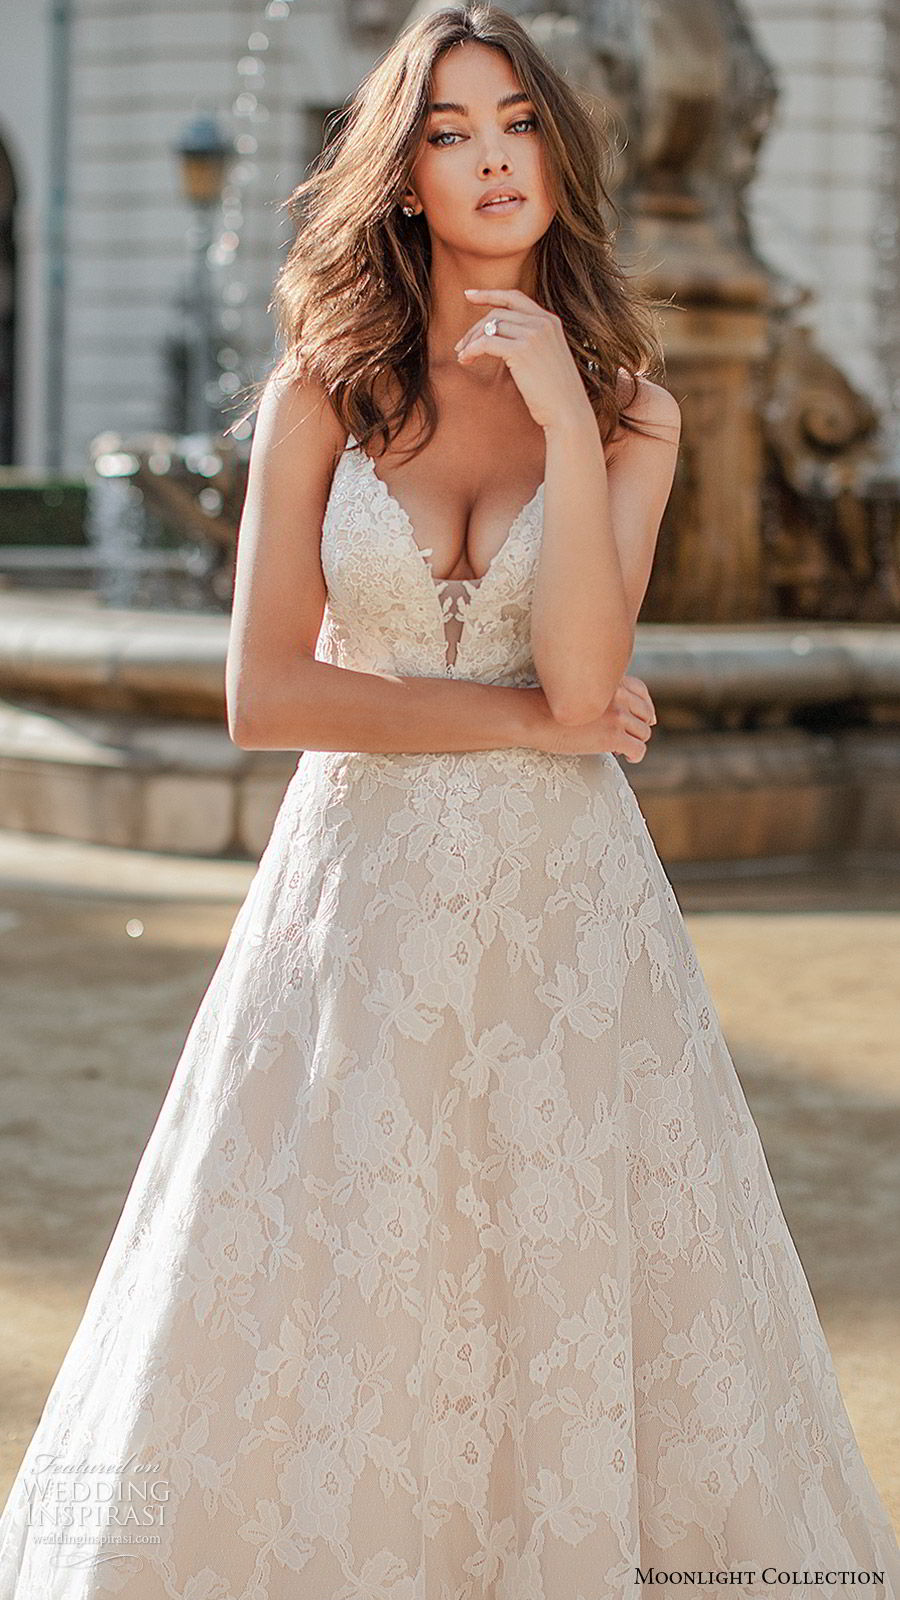 moonlight collection fall 2019 bridal sleeveless thin straps plunging v neckling fully embellished lace a line ball gown wedding dress (10) romantic princess chapel train zv